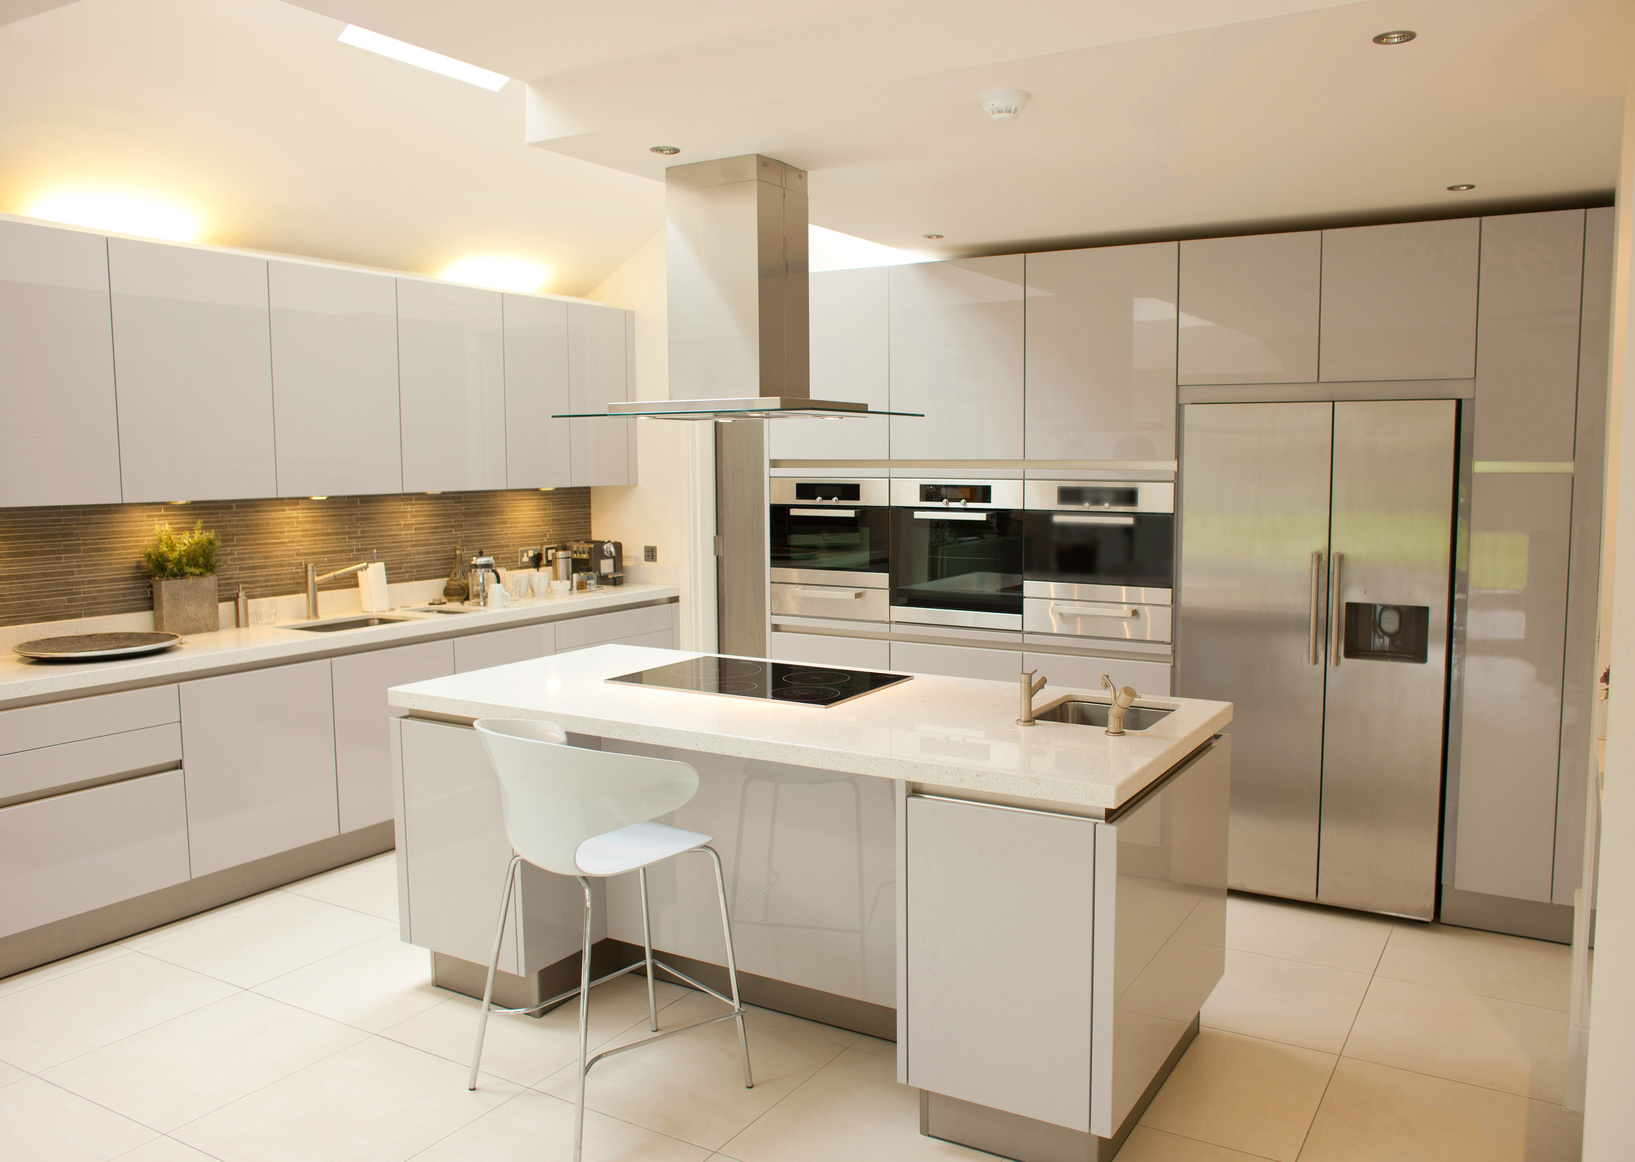 How much does a new kitchen cost How much do kitchen design services cost